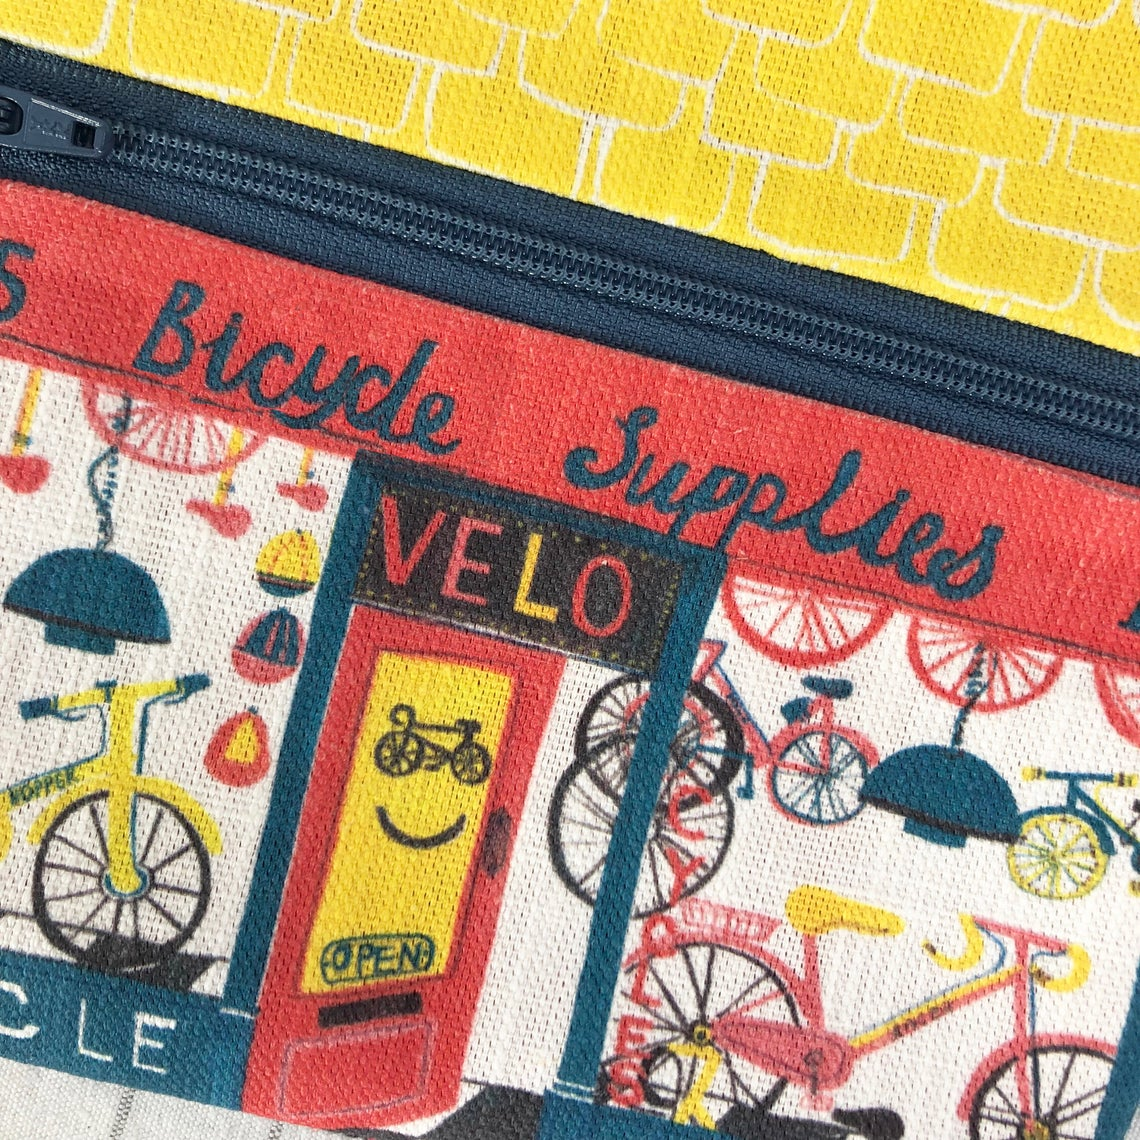 The Smallish House 'Bike Shop' Bag — The Tetley Shop